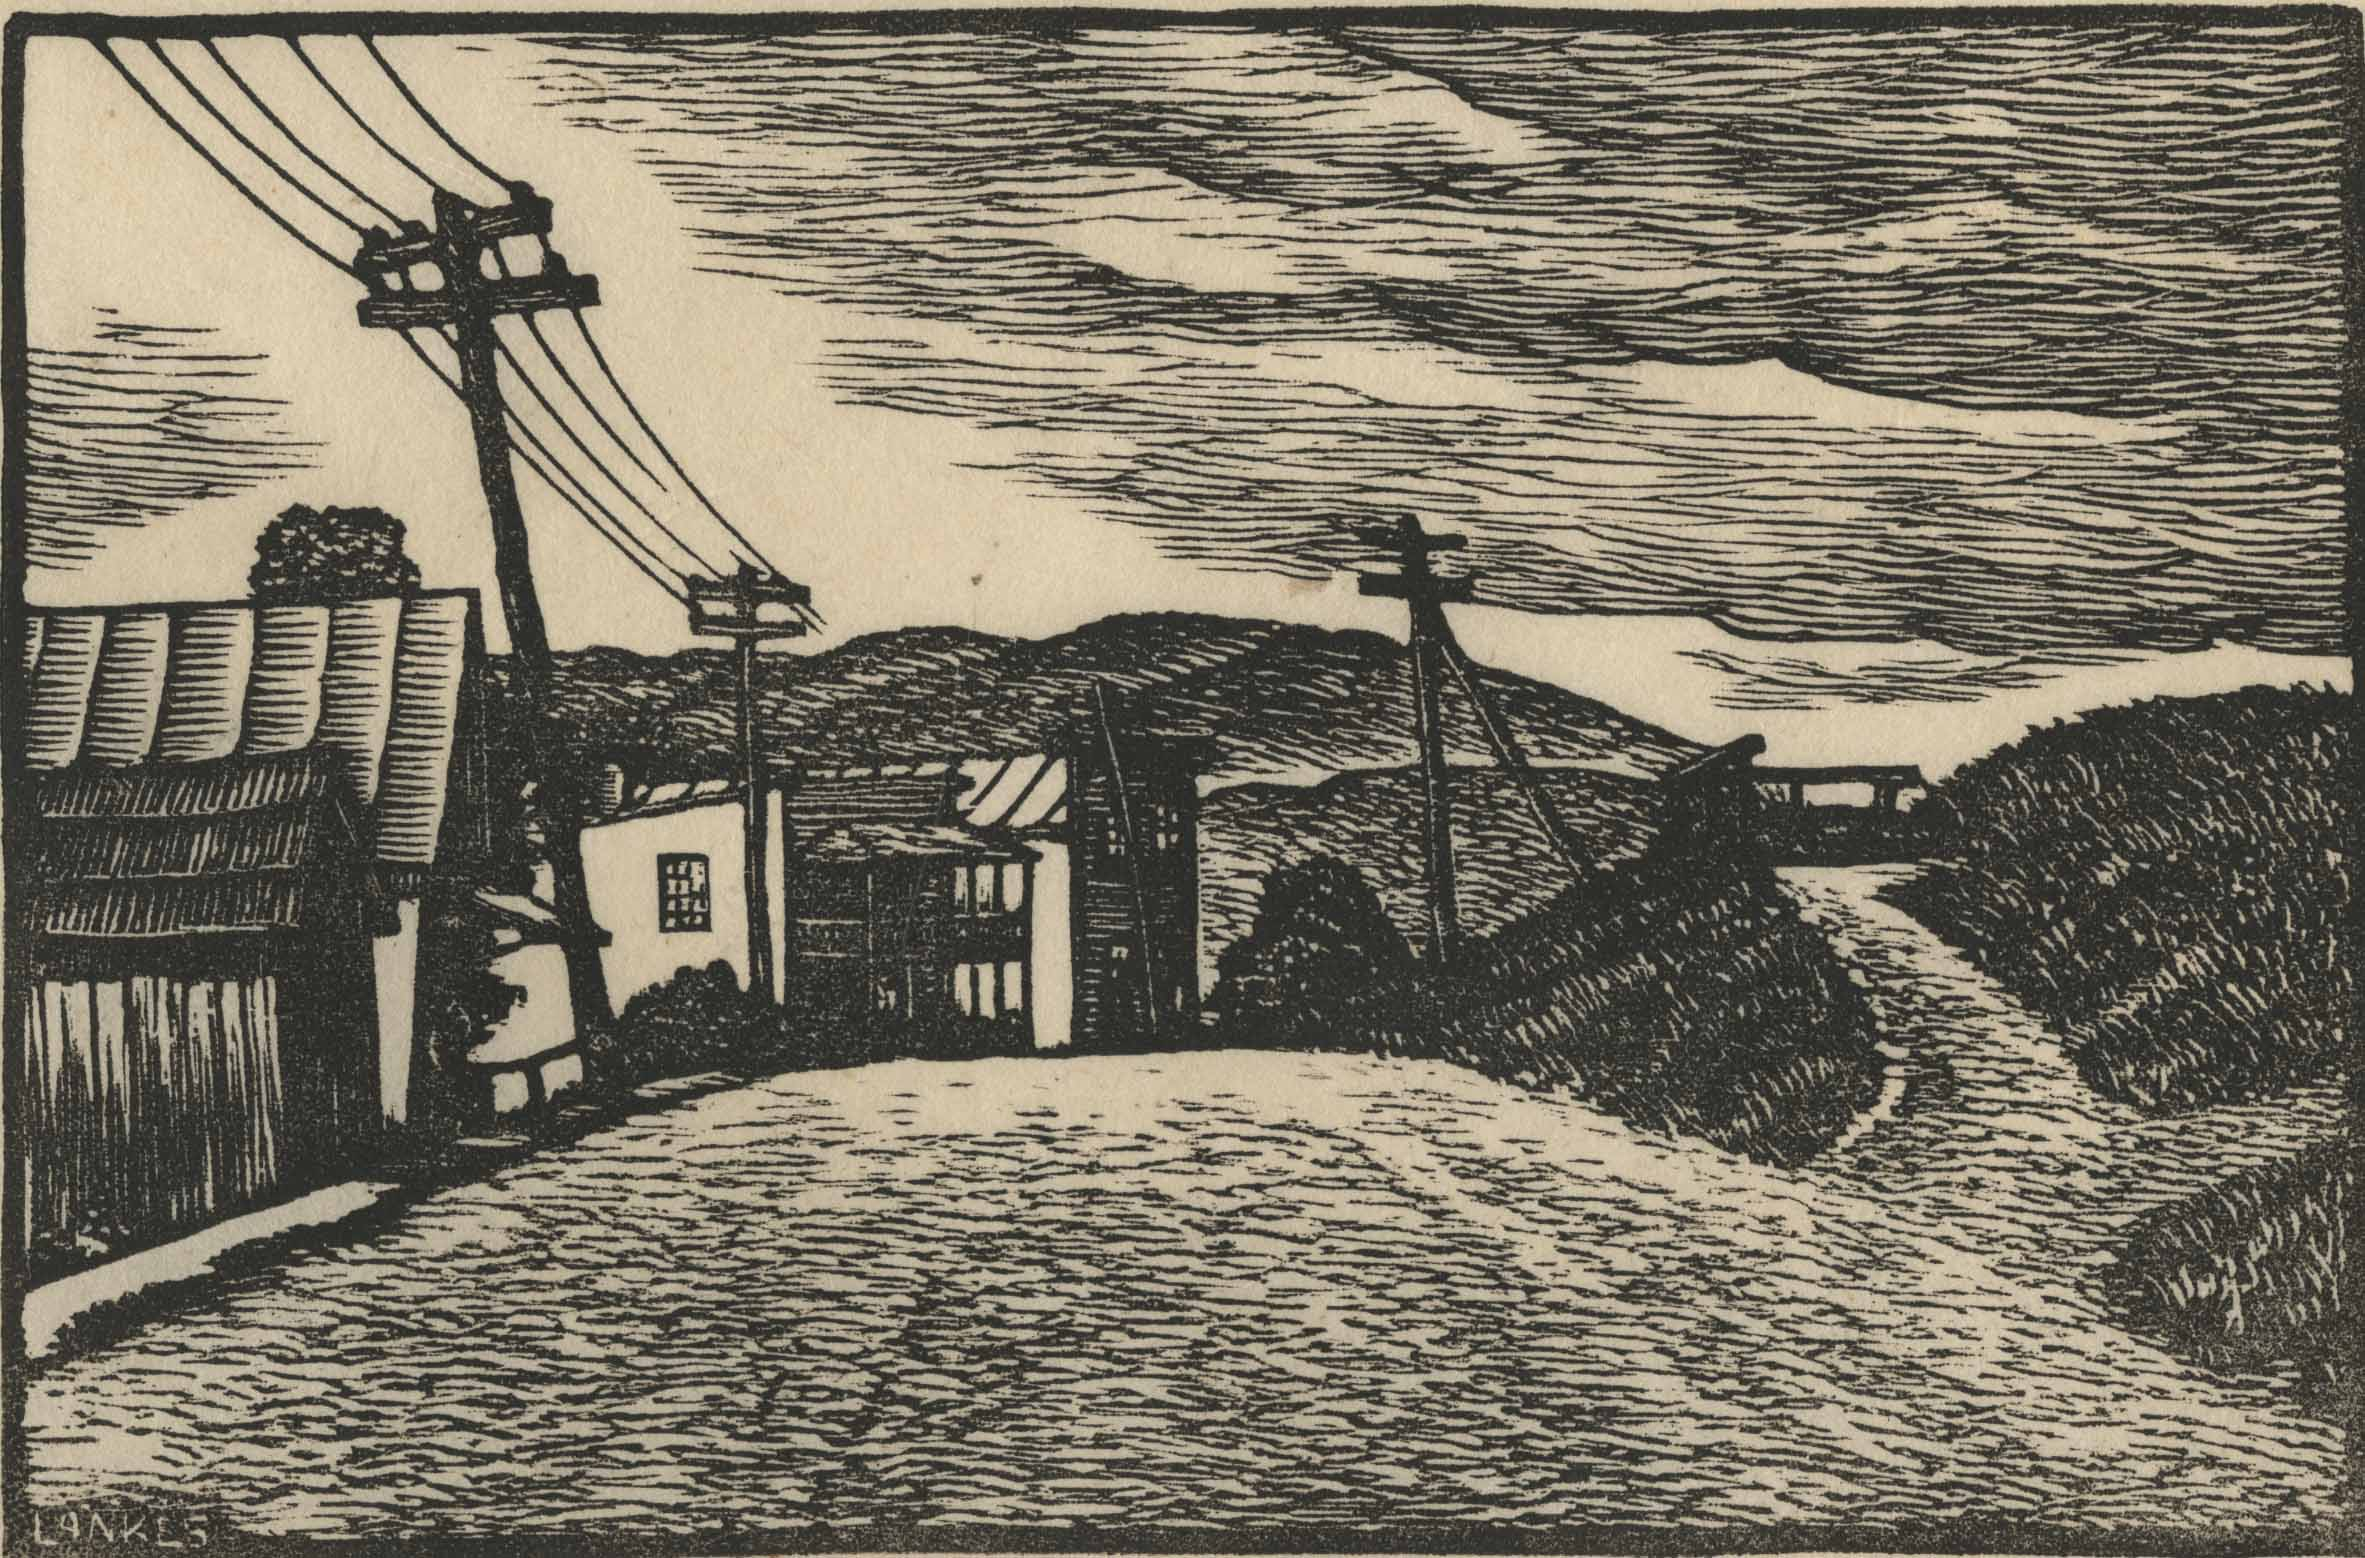 Woodcut by J.J.. Lankes